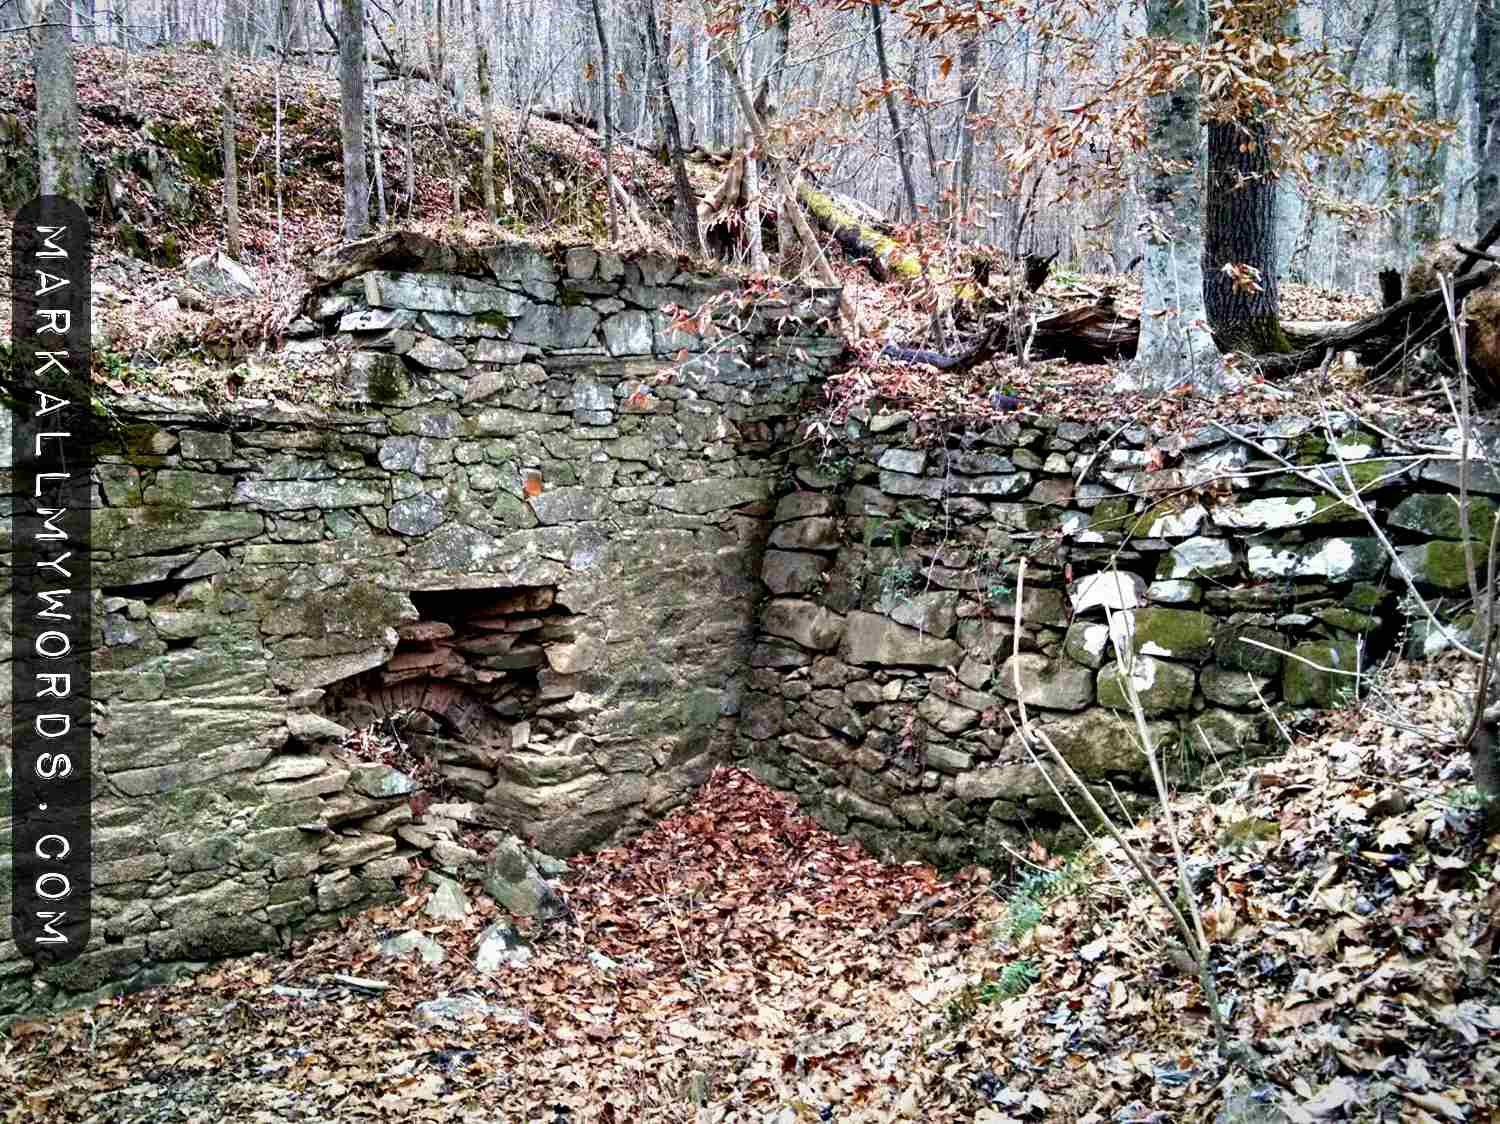 Closeup of ruins of Cabe Mill at Eno River State Park